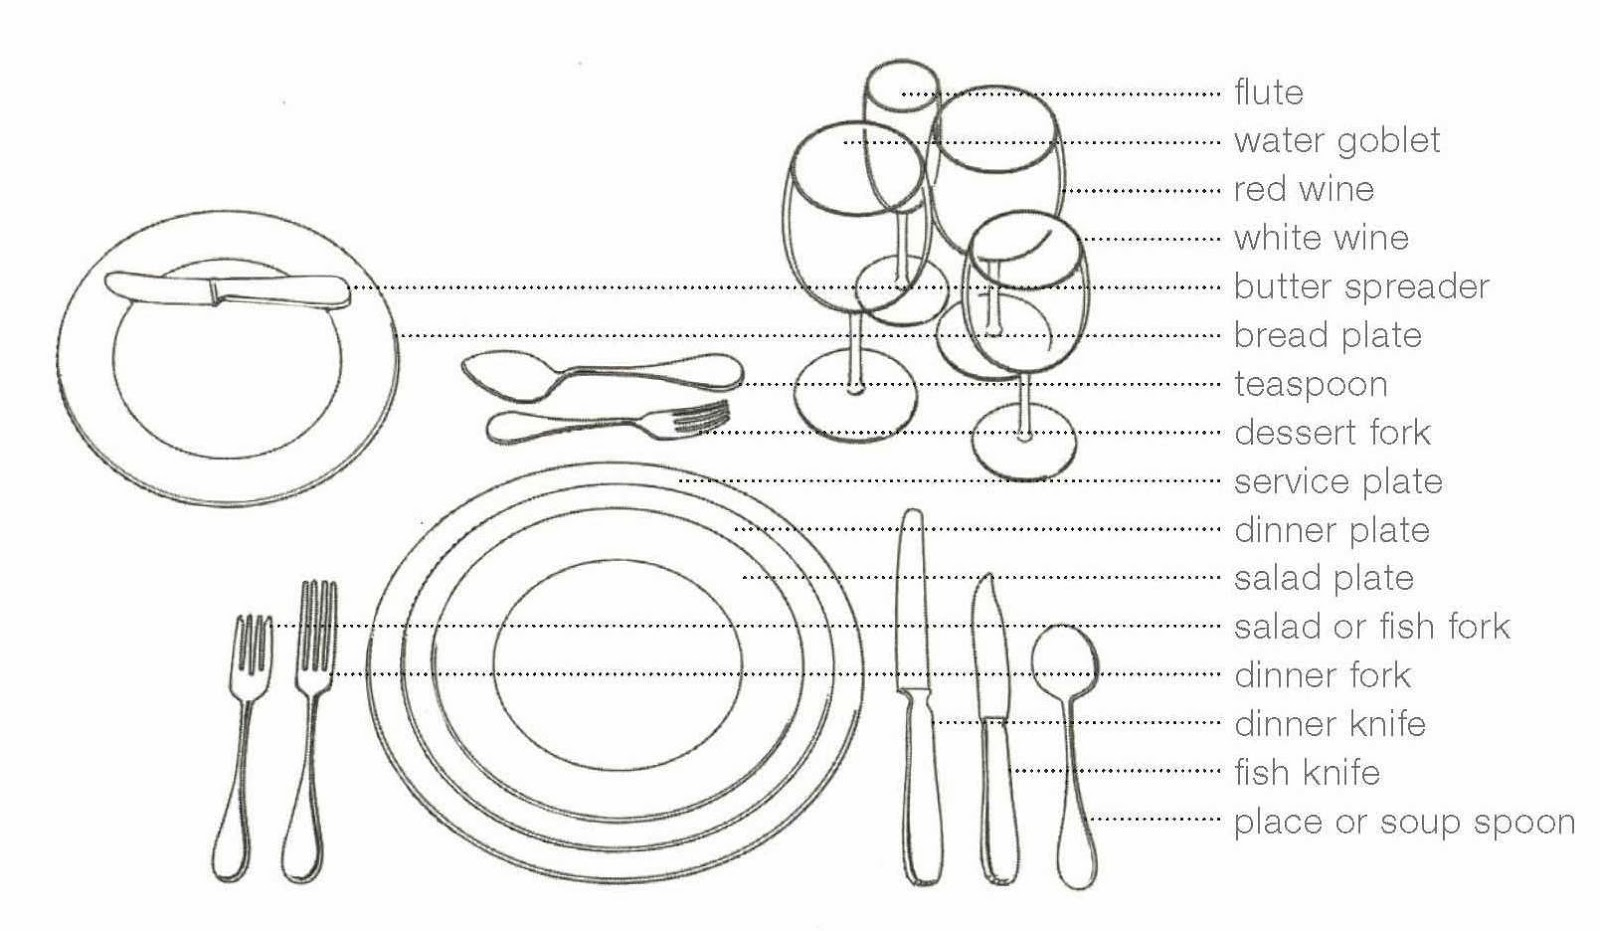 medium resolution of below are illustrations for a formal dinner setting